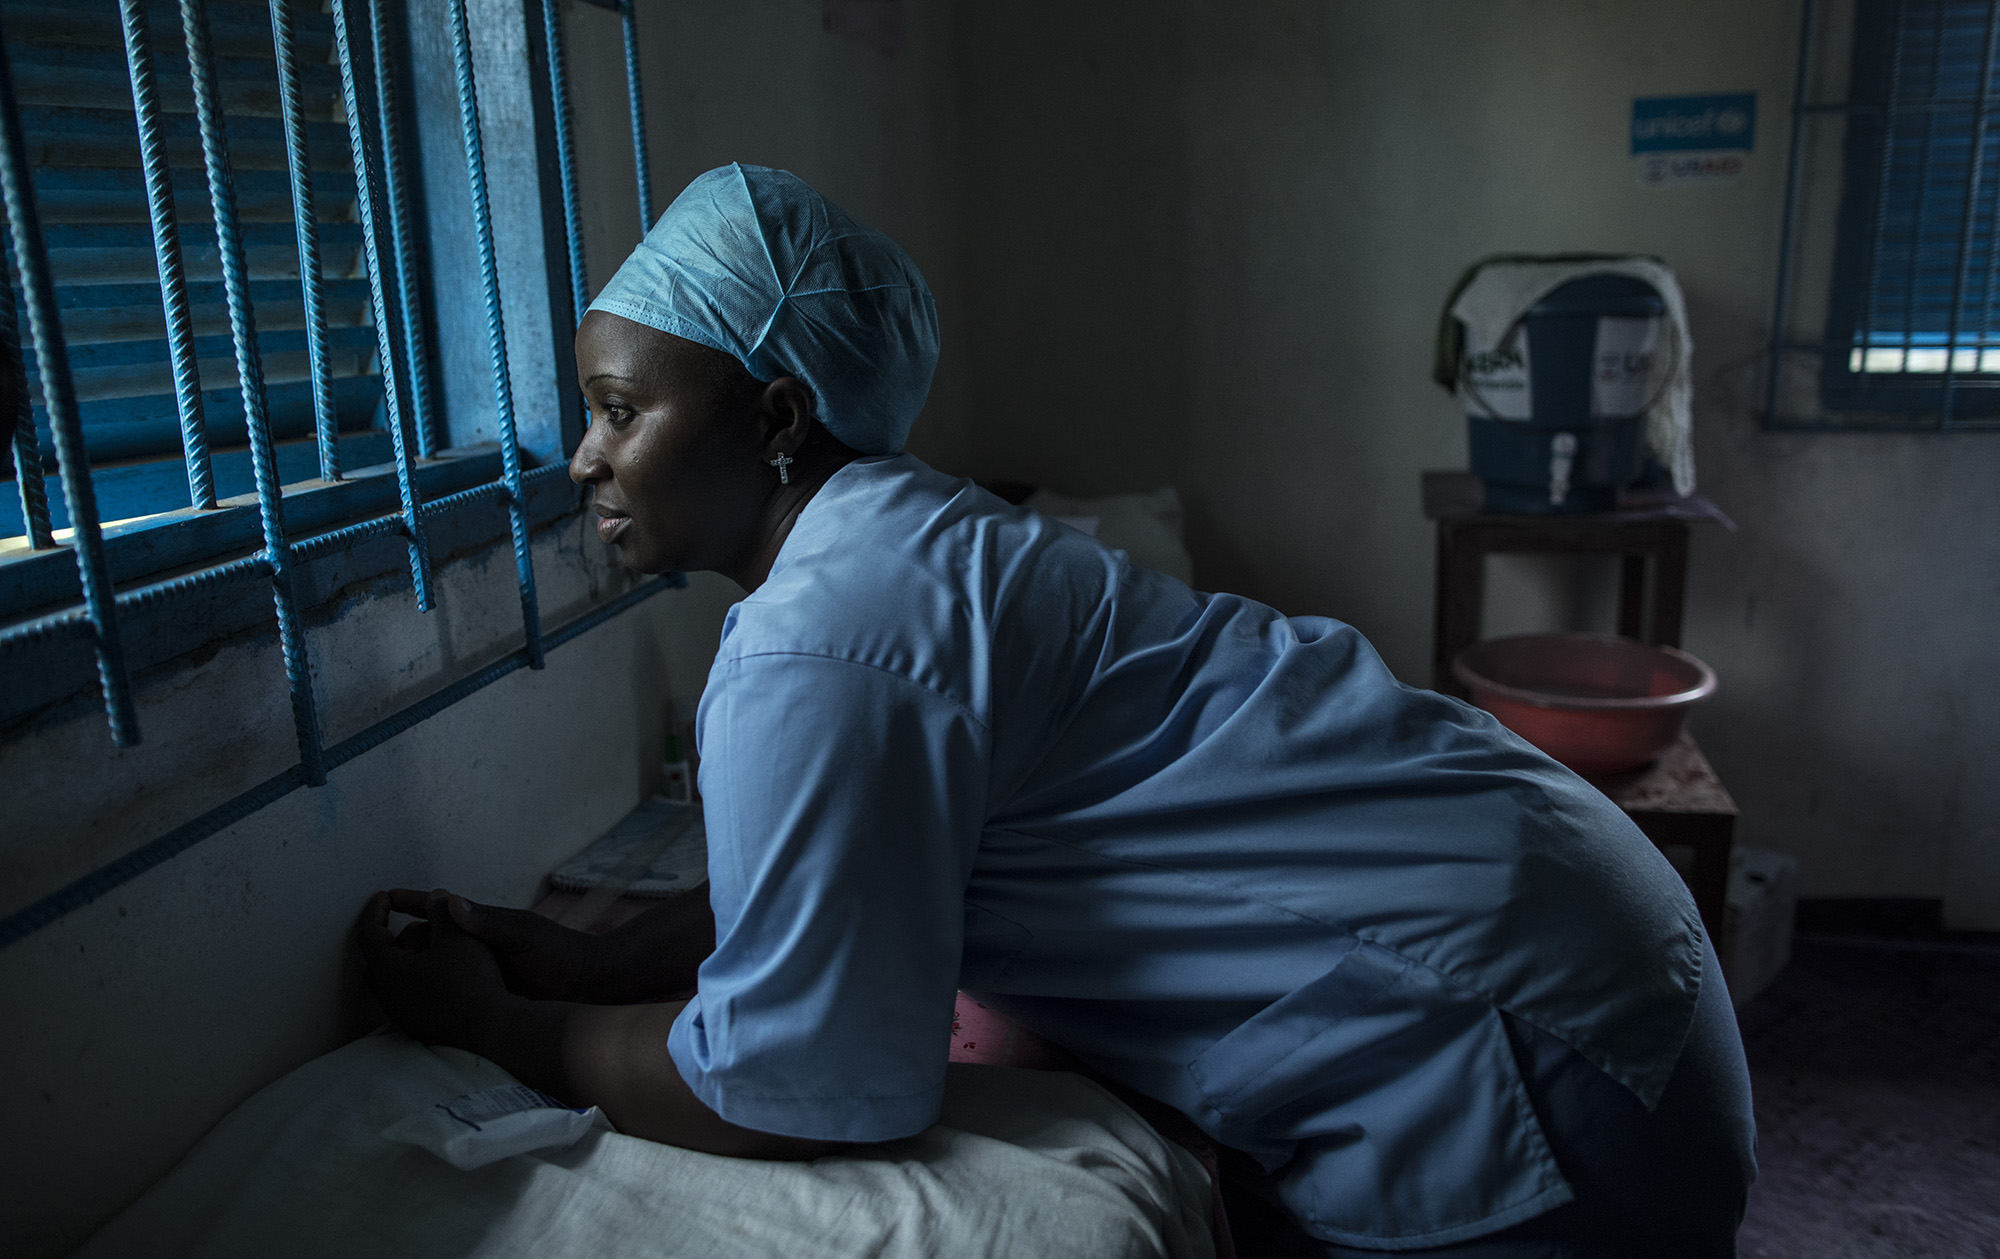 """BREWERVILLE, LIBERIA: Aug. 22, 2017 - Wislyne S. Yarh Sieh is a registered nurse and Officer in Charge (OIC) at Kpallah Community Clinic in Brewerville. Wisylne worked as a healthcare worker during the Ebola outbreak in 2014-2015. Healthcare workers like Wislyne were left isolated and alone to fight this mysterious disease from the heart of the jungle. But, she, along with many others, continued to fight. """"Being a nurse is like being a soldier. You cannot take your uniform off when there is battle. Then you are not a soldier. So I went on the frontline because I wanted to save lives,"""" she remembers. The Ministry of Health did not have a centralized system to communicate vital information to healthcare workers across the country at the same time. UNICEF and USAID worked together to create a platform that utilized mobile phones to facilitate a two way communications system between healthcare workers and the centralized ministry. Because of this new technology, healthcare workers across the country can receive text messages with important information about health emergencies. They are also able to use their phones to inform the Ministry of Health about the status of stocks in the clinic. Since Ebola, Wislyne has started using the new platform and now feels more connected and informed. She says, """"If this program just stopped without things being in place, it would carry our work backward. It would make my work longer and delay treatment of the patients."""""""